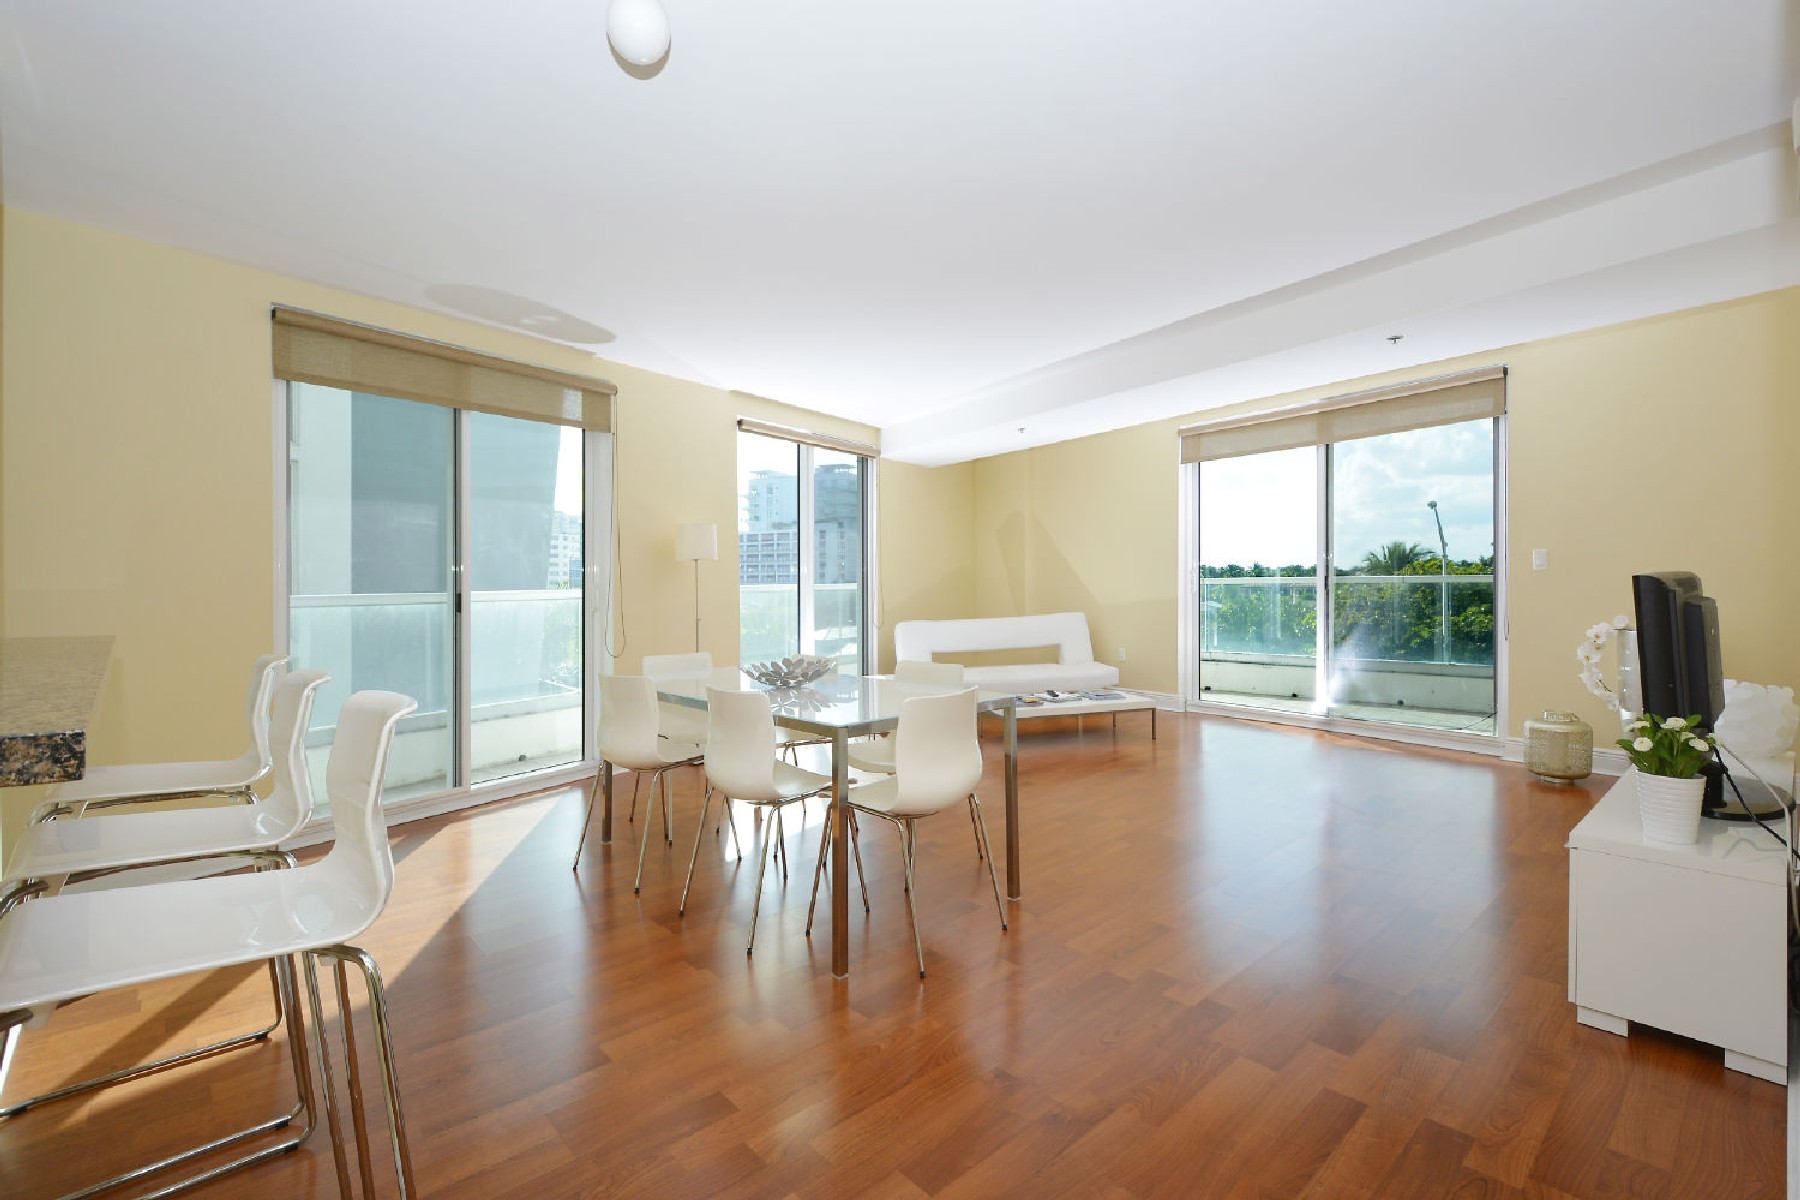 Apartment for Sale at 6362 Collins Ave #414 6362 Collins Ave 414 Miami Beach, Florida, 33141 United States